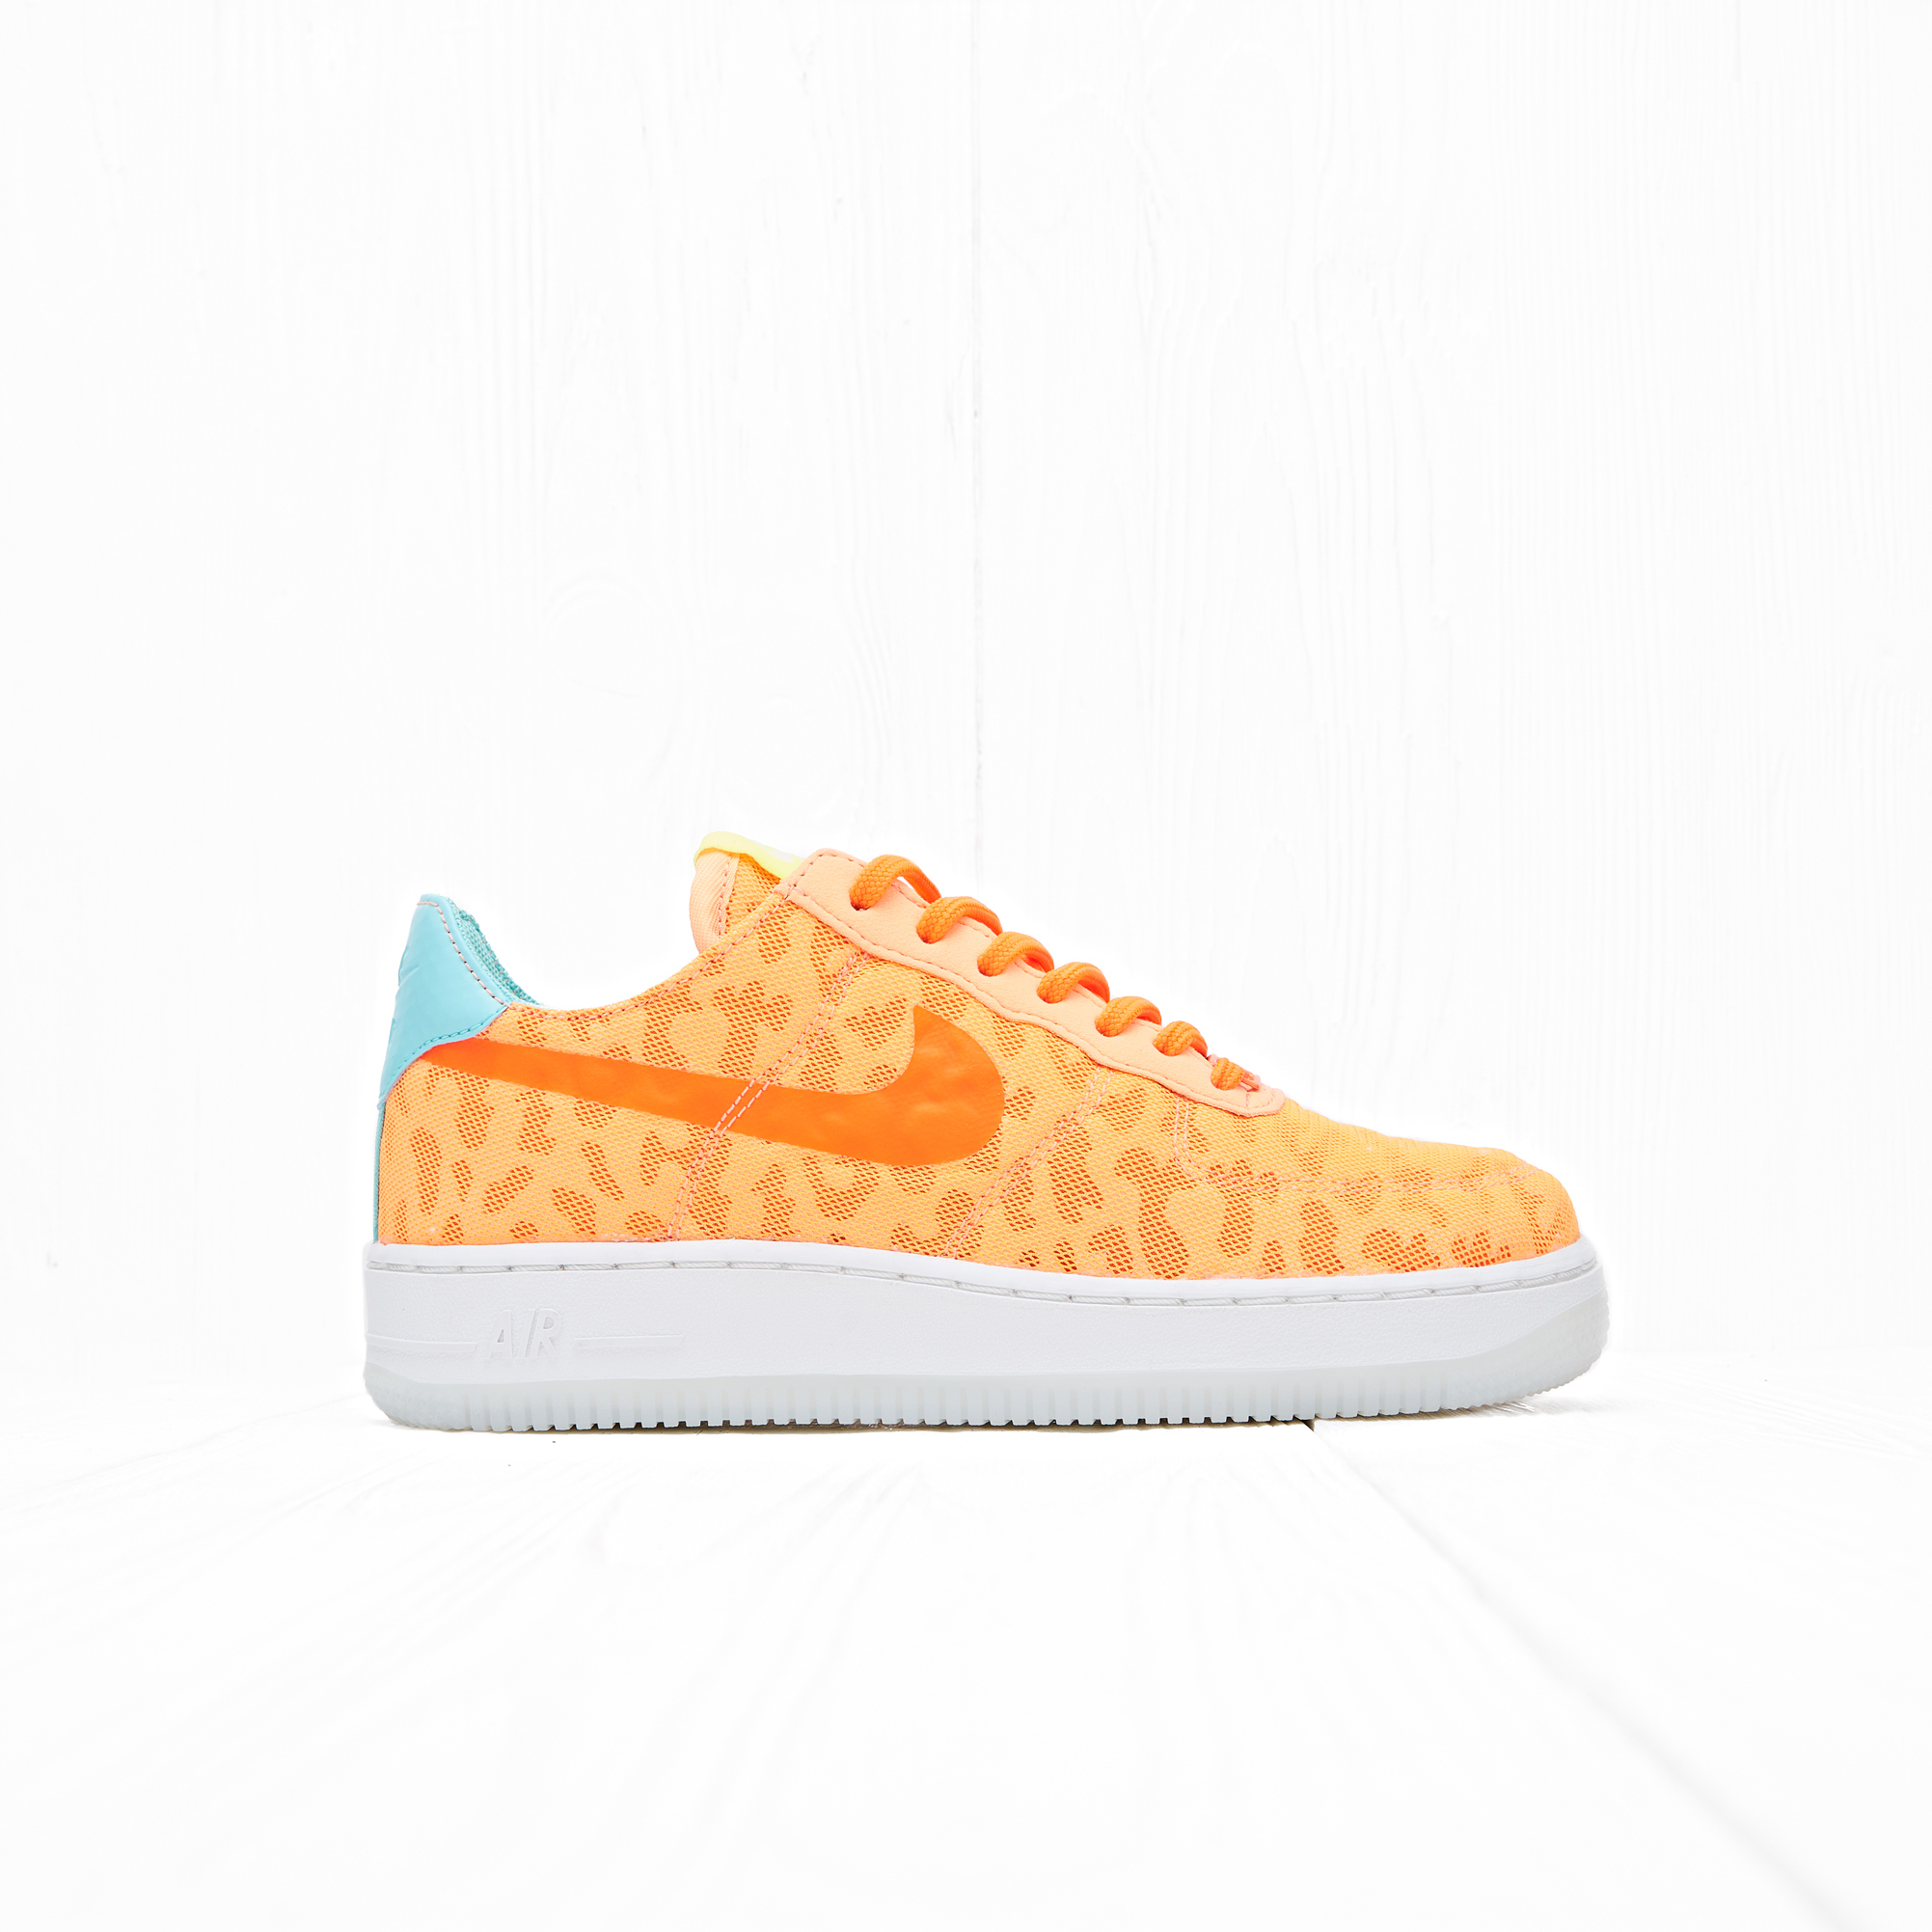 Кроссовки Nike W AIR FORCE 1 07 TXT PRM Peach Cream/Hyper Turquoise/Volt/Total Orange